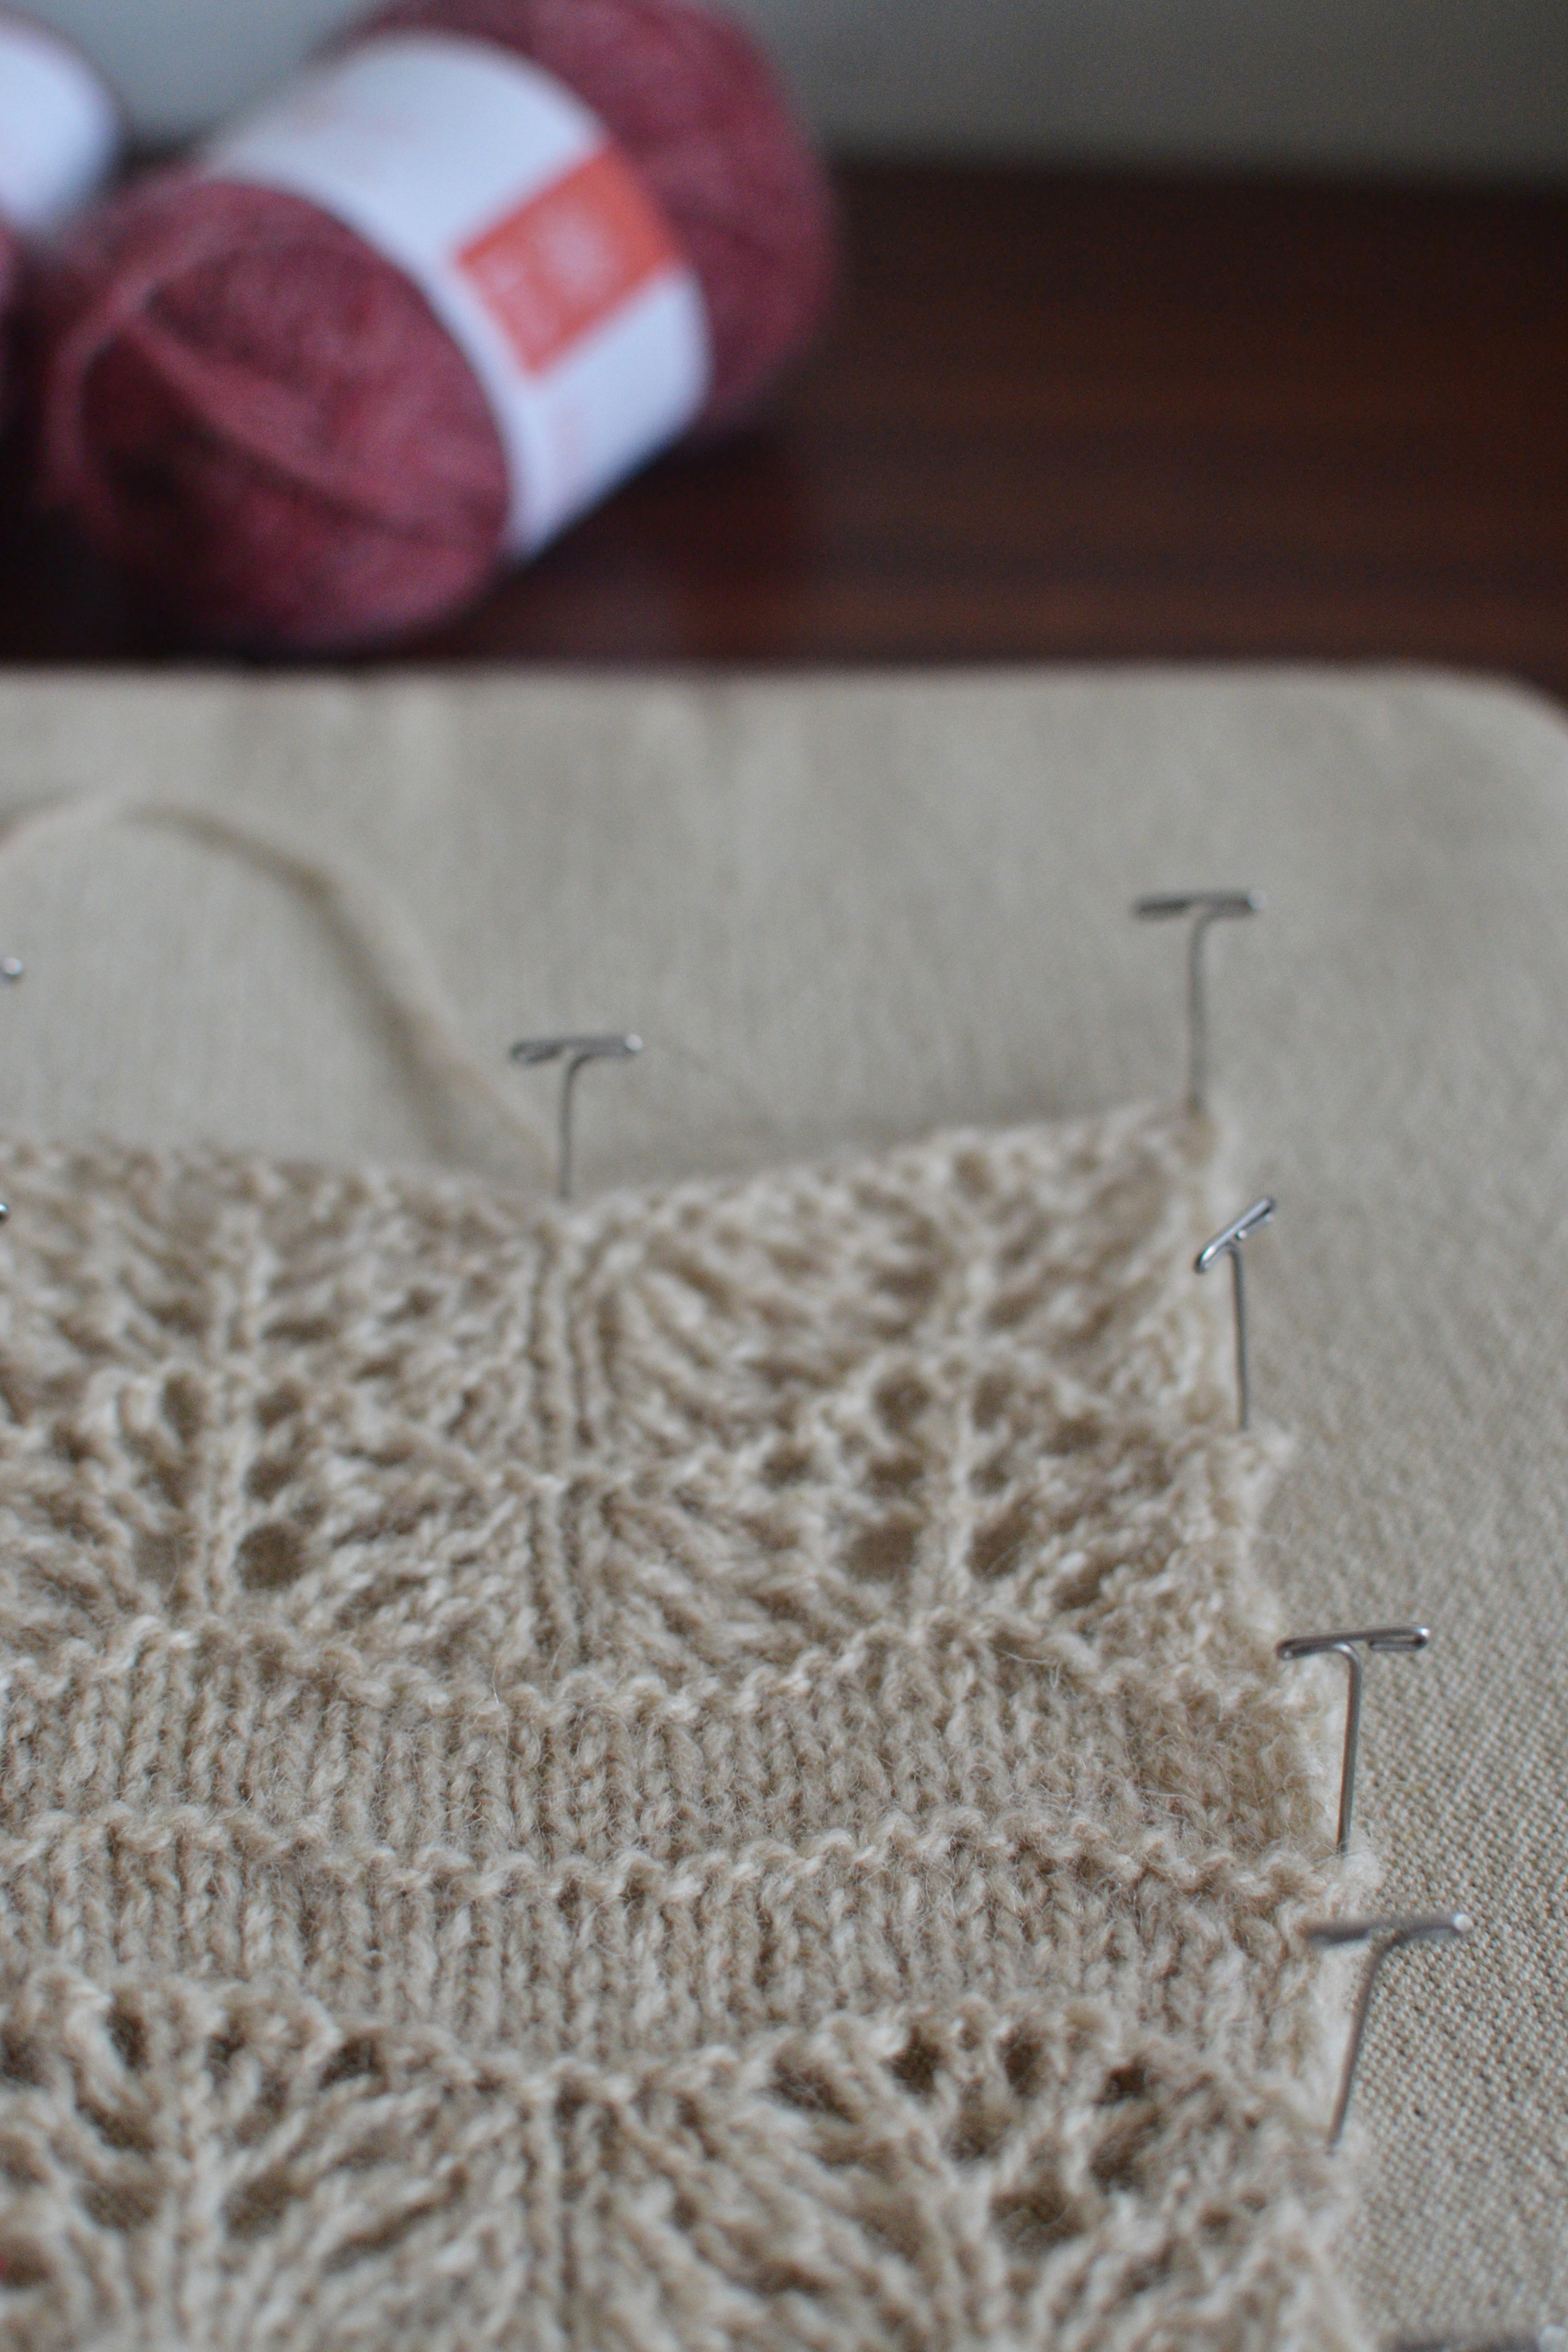 Swatches diary: Selkie swatch in Jamieson & Smith